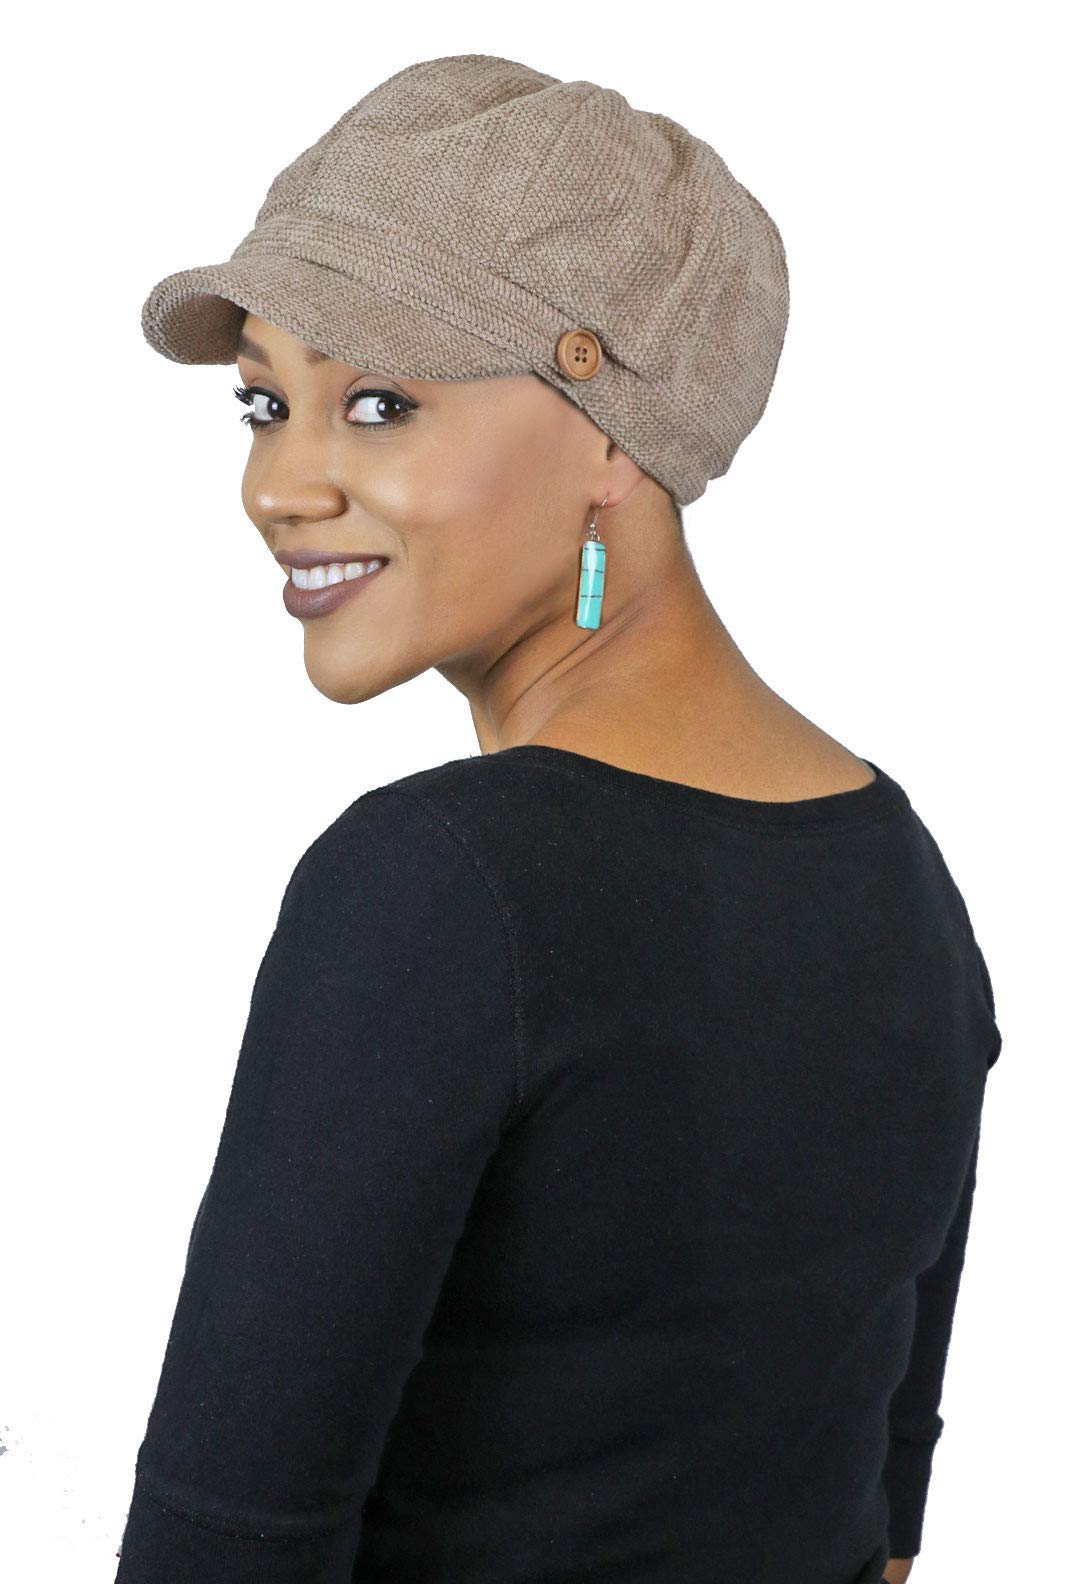 Newsboy Cap for Women Cancer Headwear Chemo Hat Ladies Head Coverings Tweed Corduroy (Taupe) by Hats Scarves & More